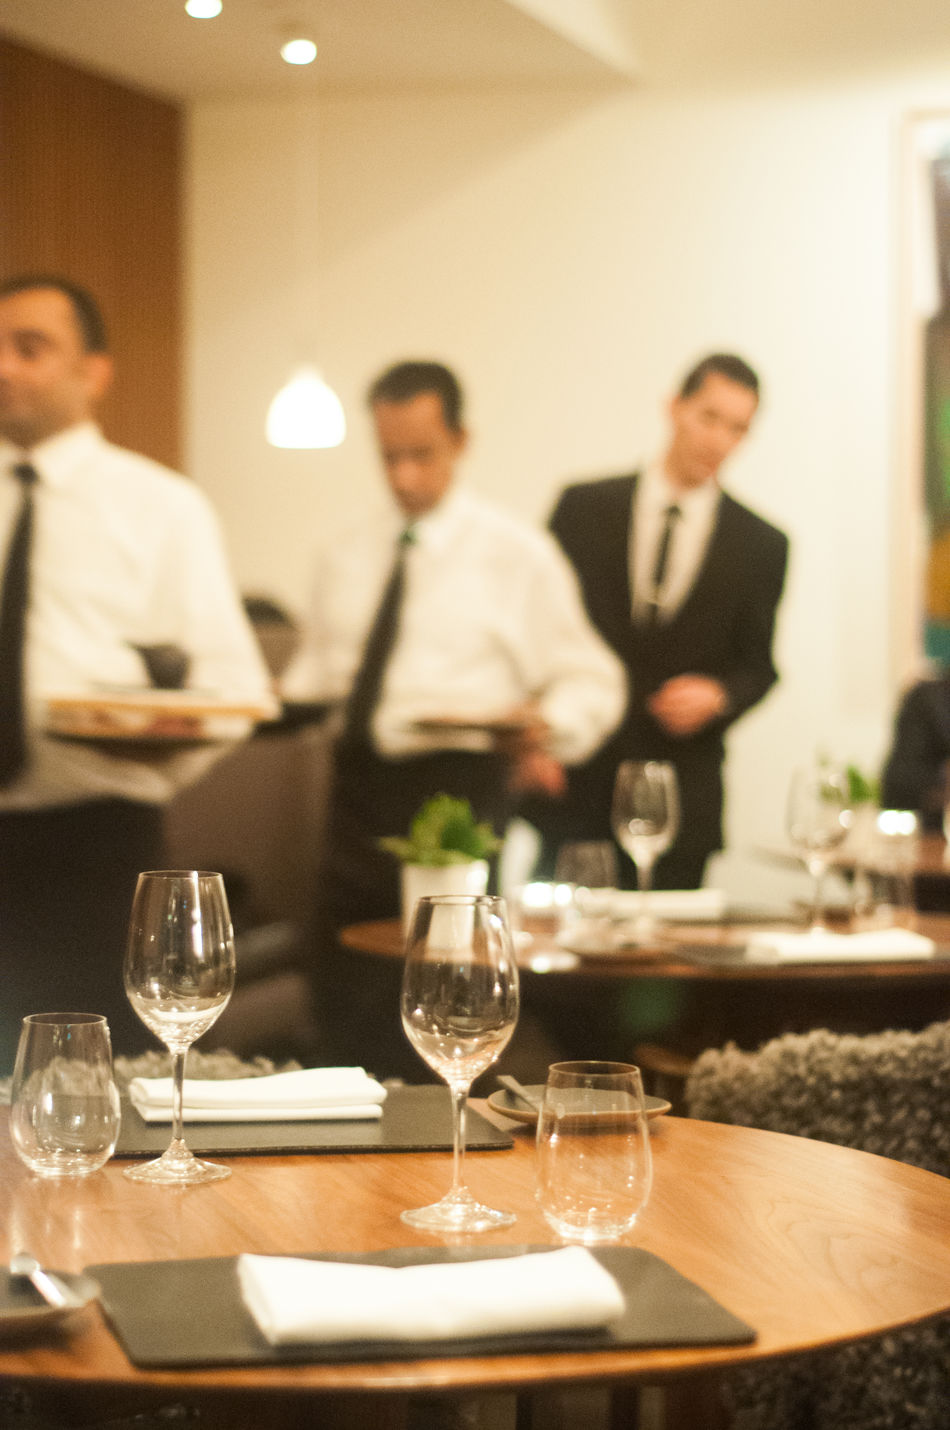 Adult Adults Only Business Business Lunch Businessman Corporate Business Day Drink Food Food And Drink Formalwear Indoors  Men Only Men People Restaurant Shirt And Tie Table Waiter Waiter Life Well-dressed Wine Wineglass Women Young Adult